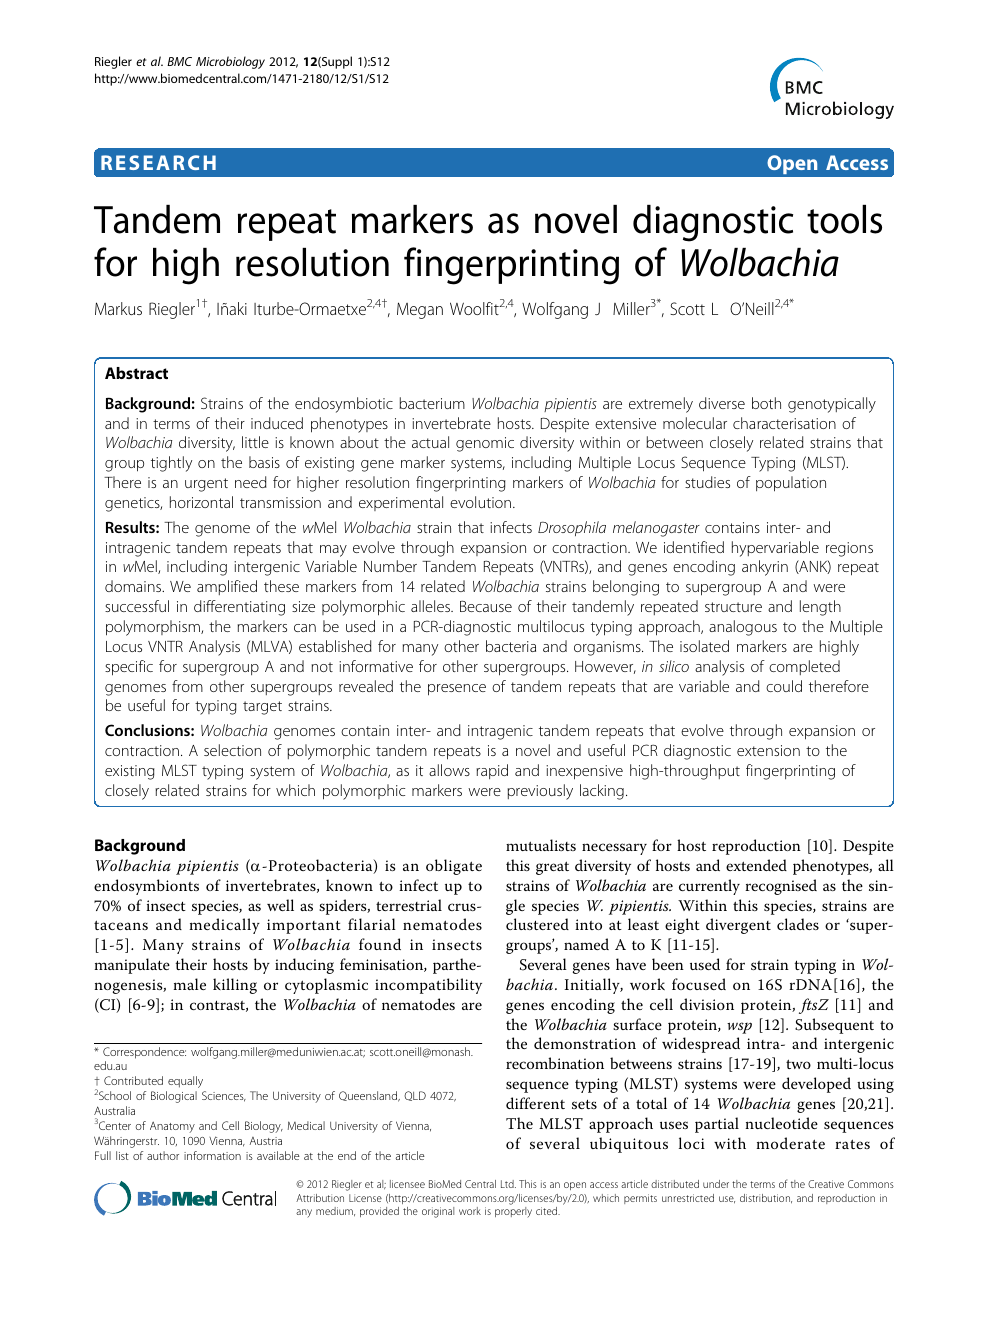 Tandem Repeat Markers As Novel Diagnostic Tools For High Resolution Fingerprinting Of Wolbachia Topic Of Research Paper In Biological Sciences Download Scholarly Article Pdf And Read For Free On Cyberleninka Open